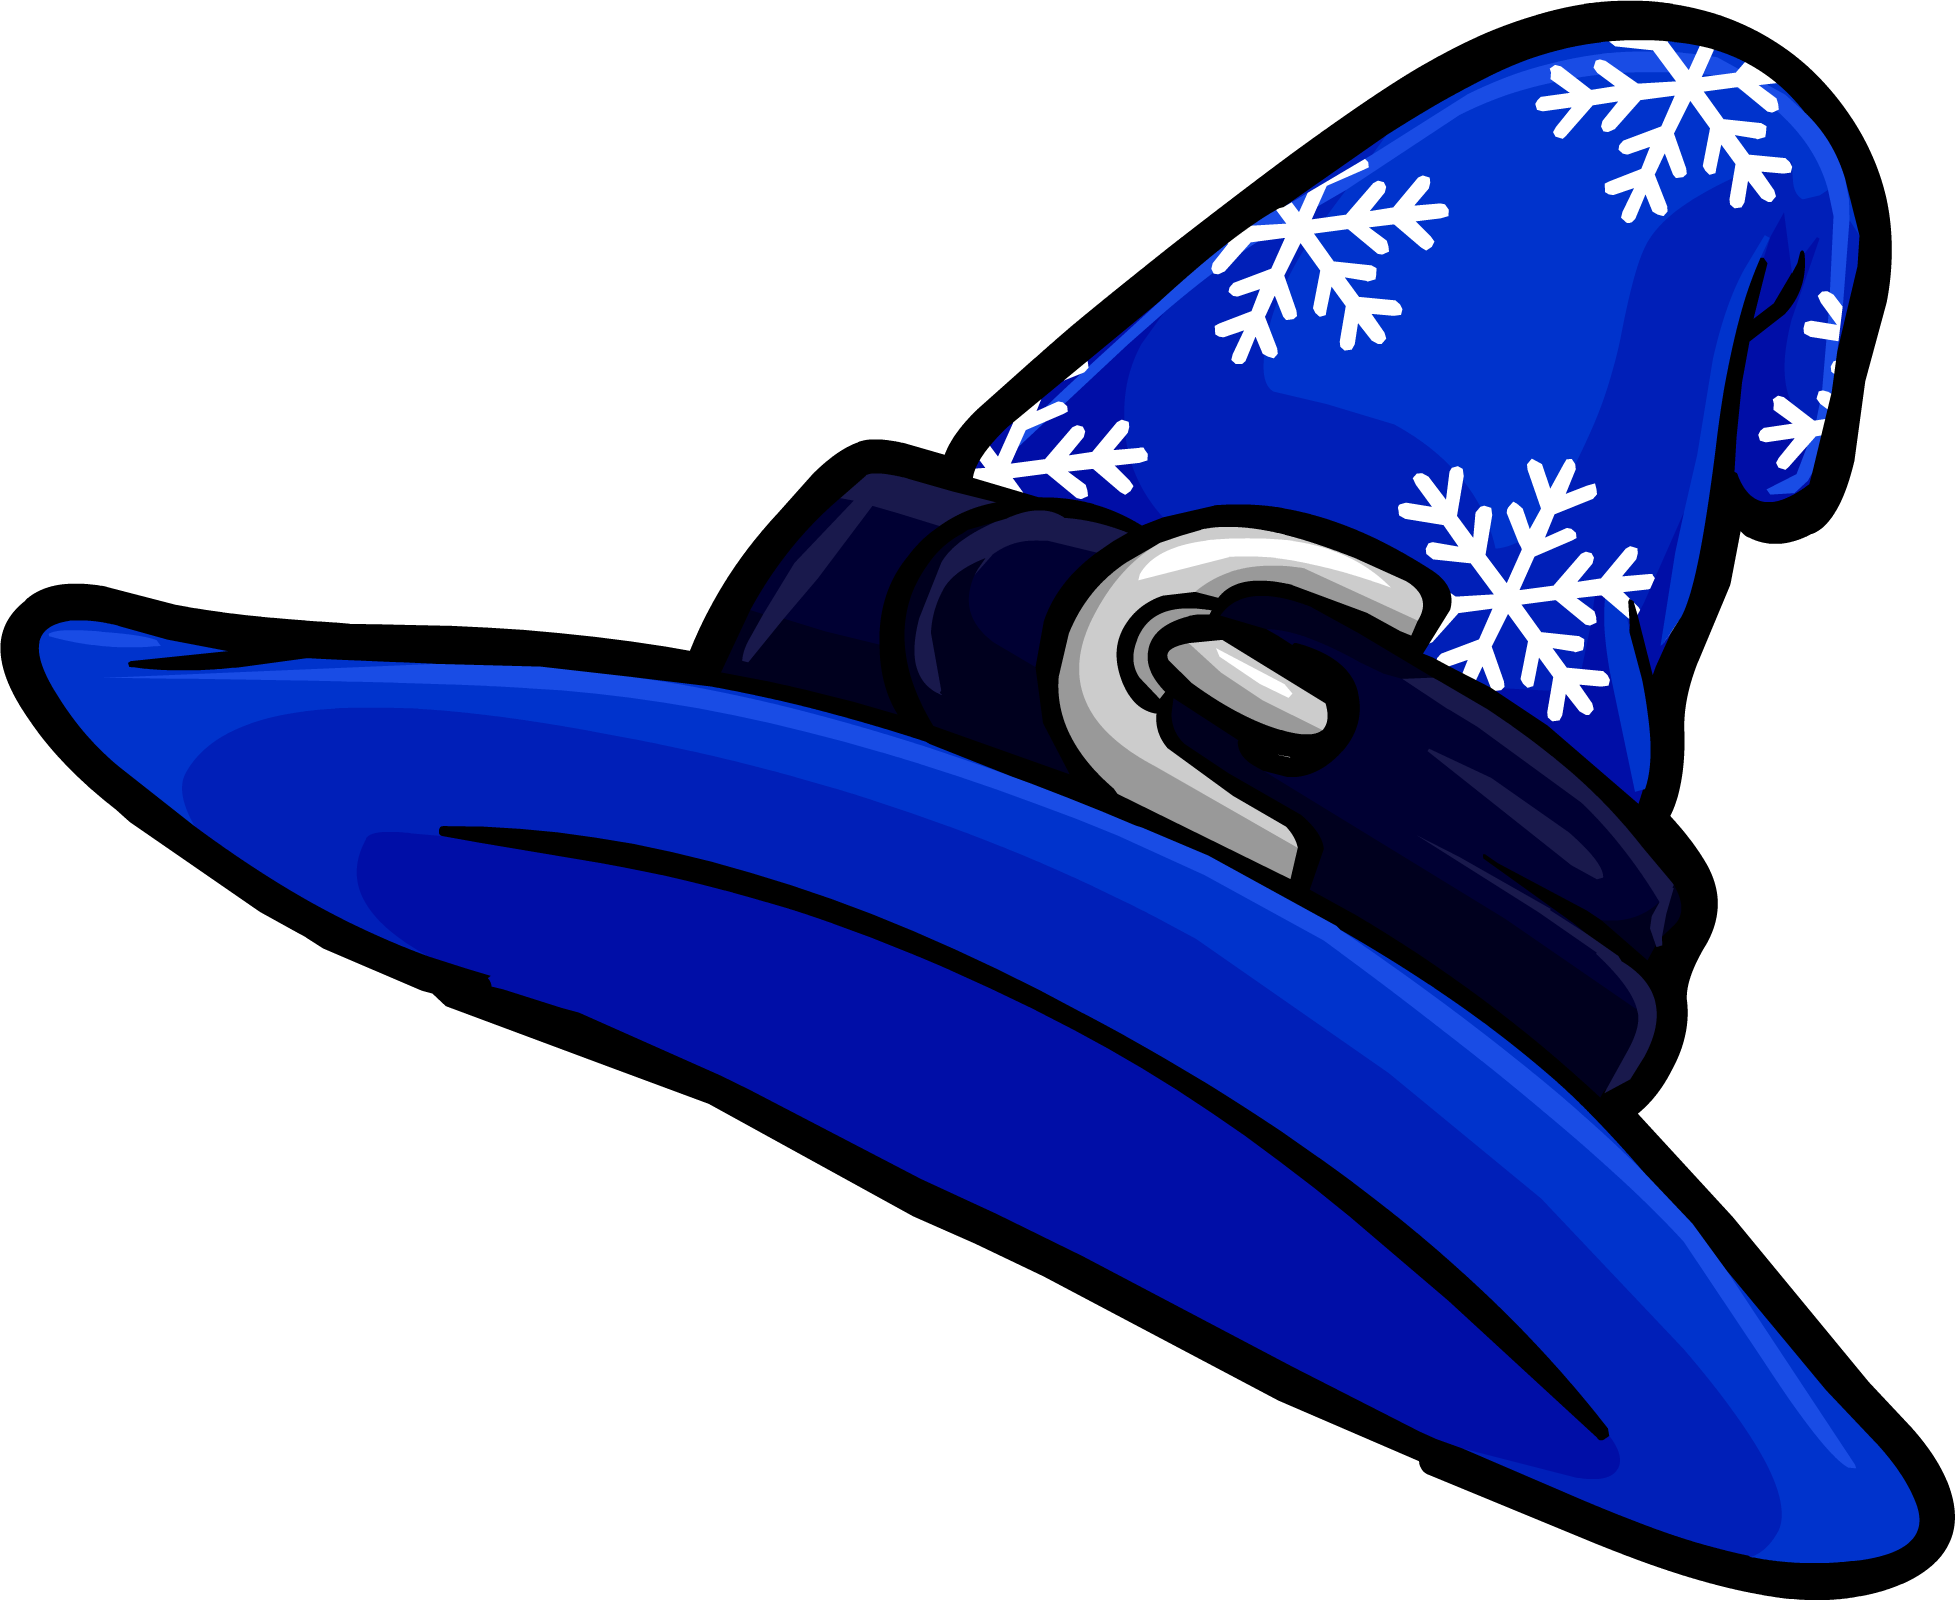 Wizard Hat Outline Google Search Club Penguin Wiki Club Penguin Cat Ears